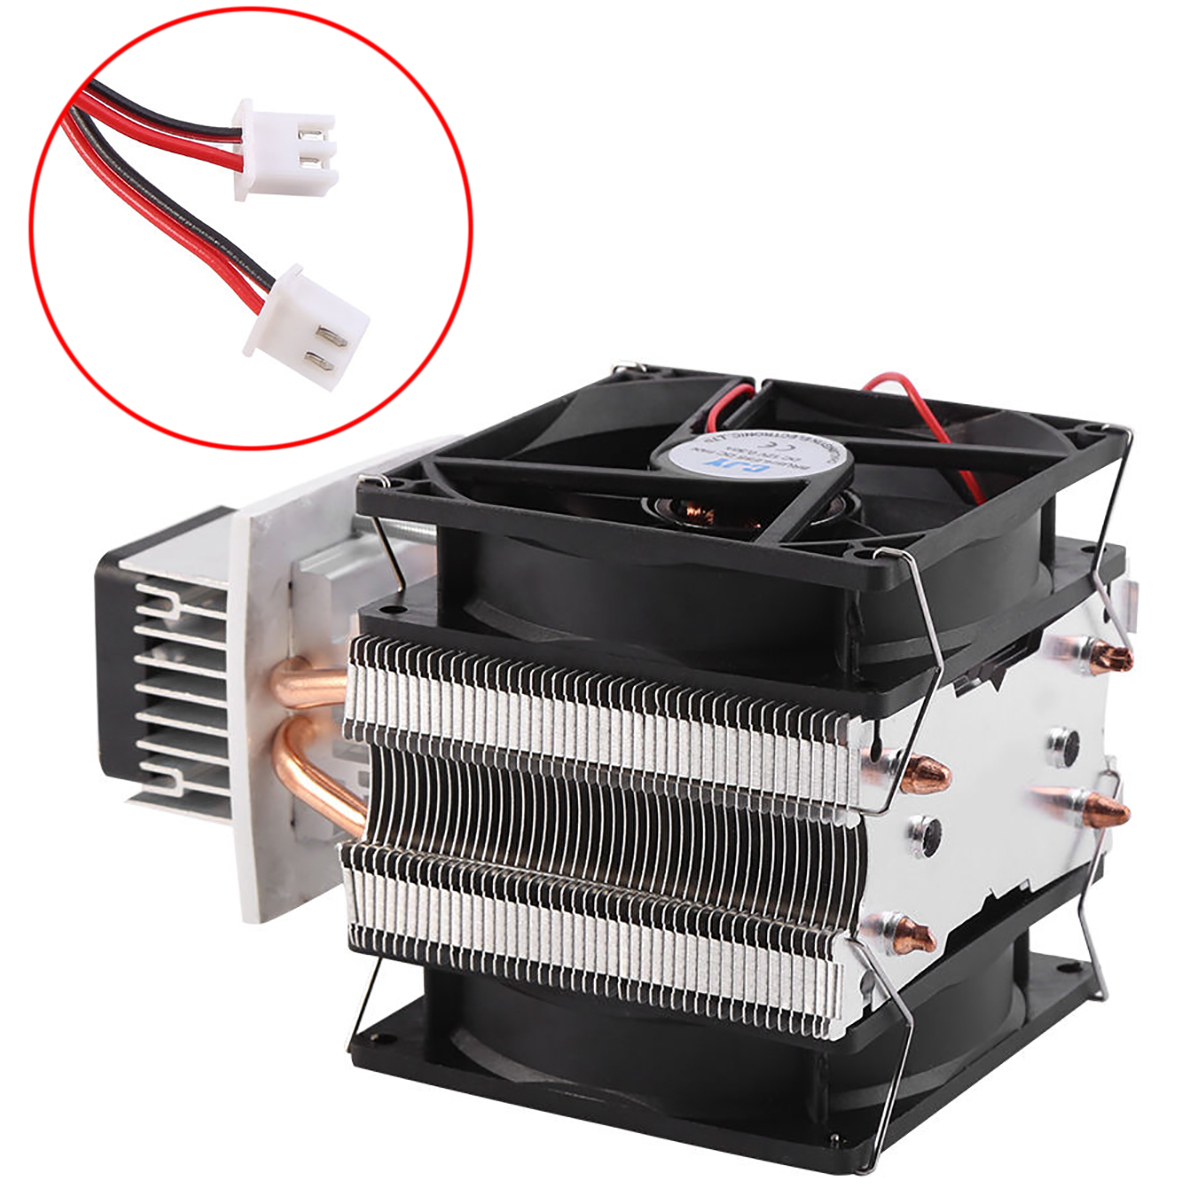 Practical 12V 6A Thermoelectric Peltier Semiconductor Cooler Refrigeration Cooling System DIY Kit Fan 175*100*98 mm Mayitr practical 12v 6a thermoelectric peltier semiconductor cooler refrigeration cooling system diy kit fan 175 100 98 mm mayitr